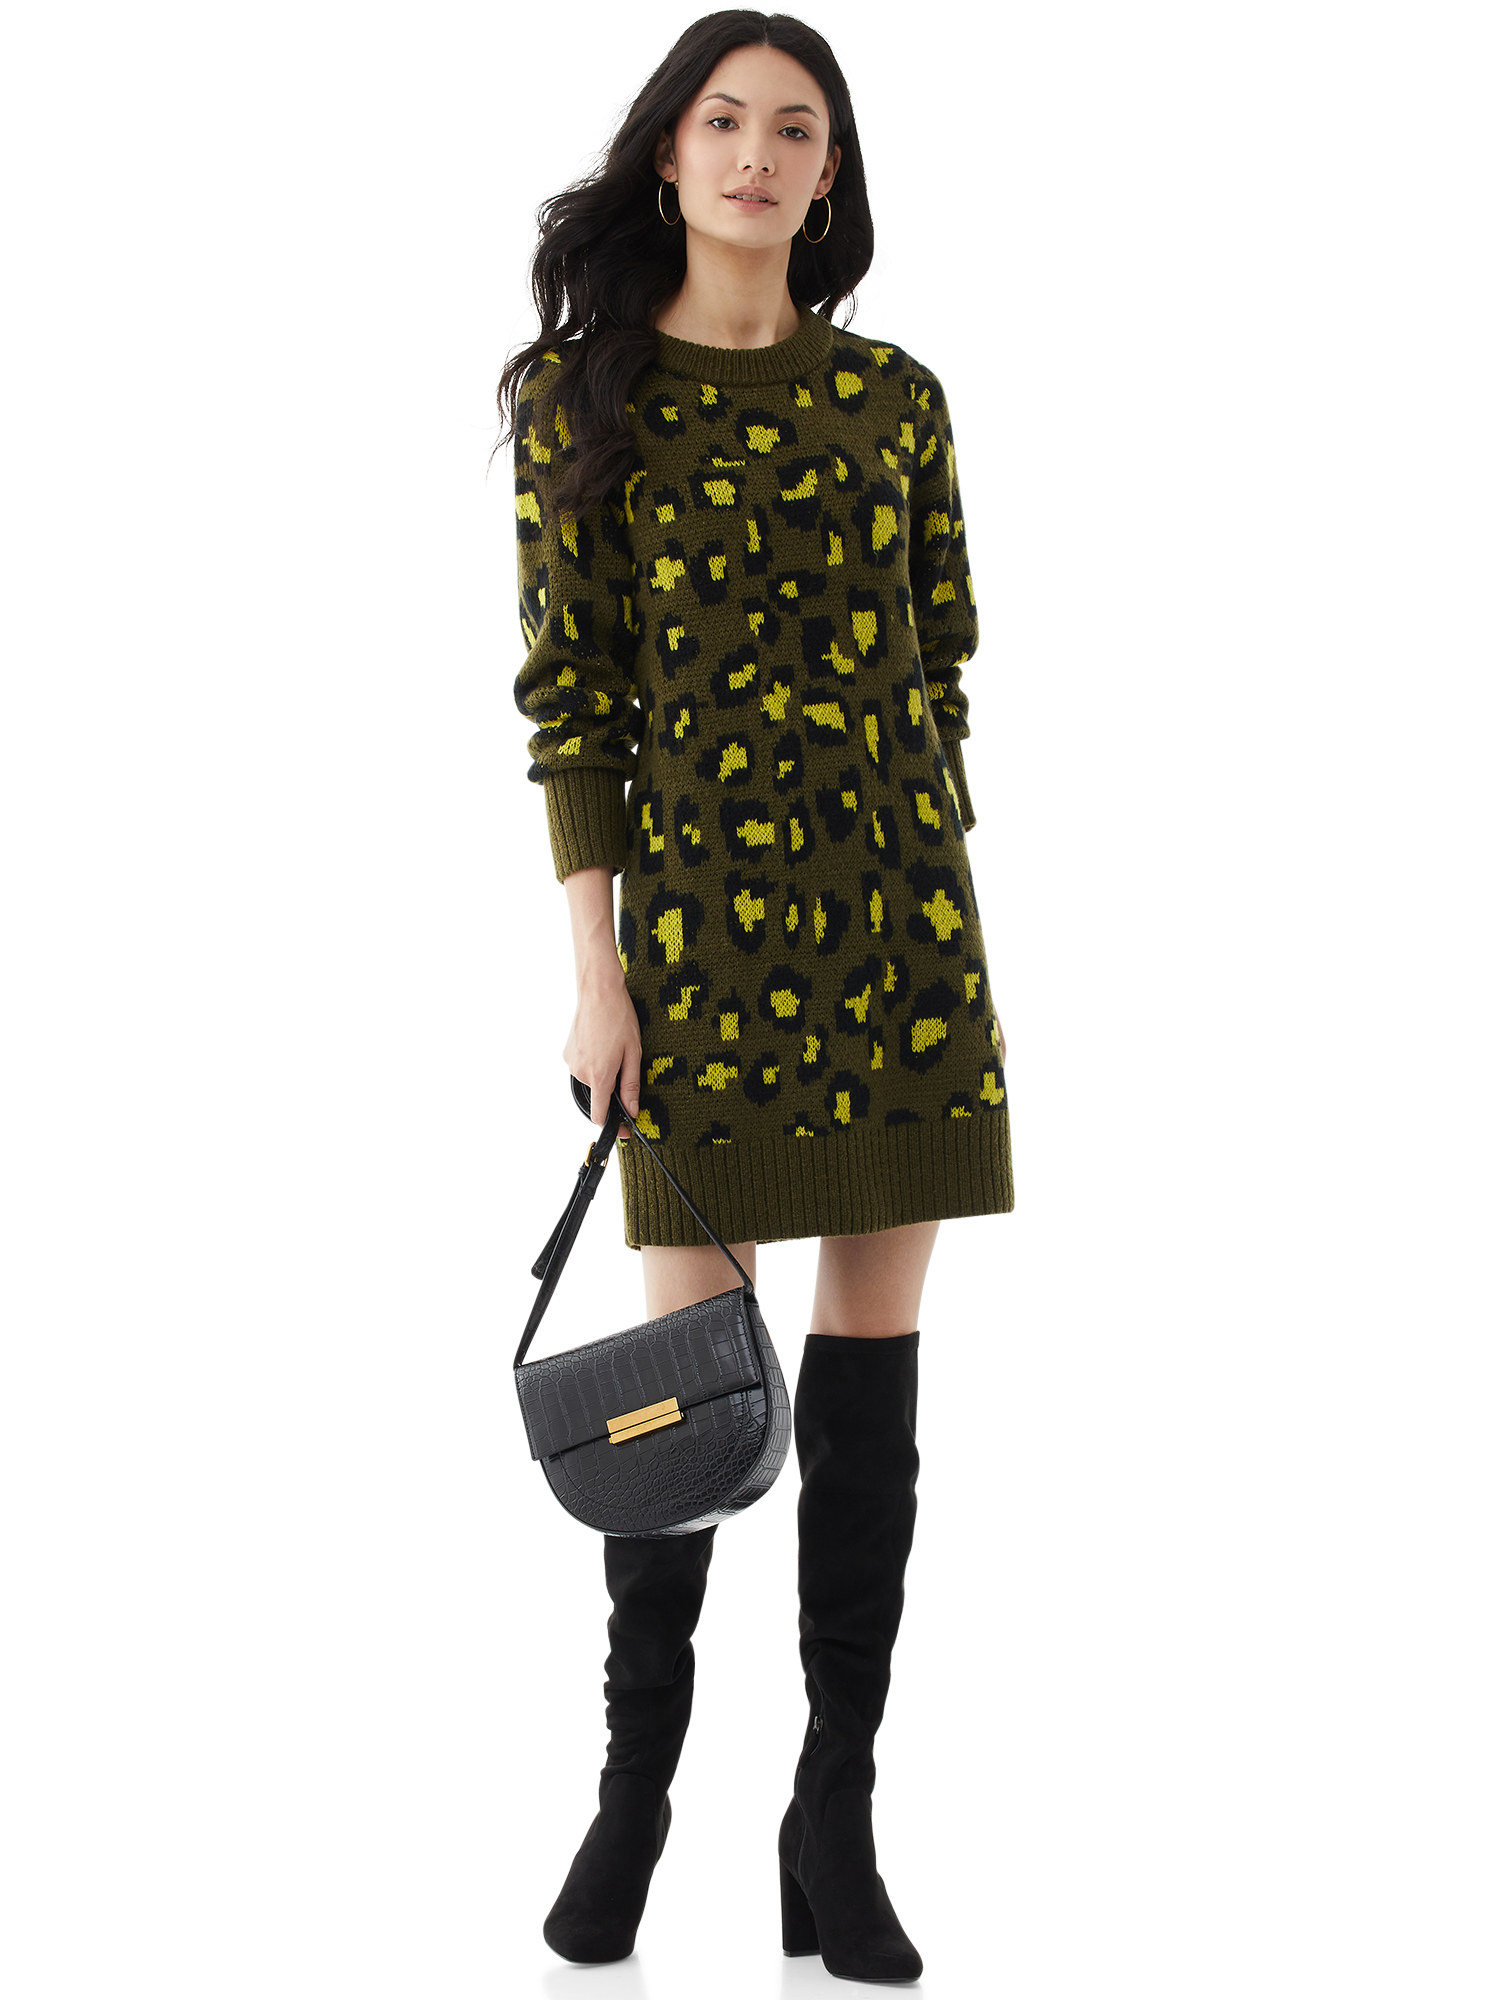 person wearing a green leopard print sweater dress